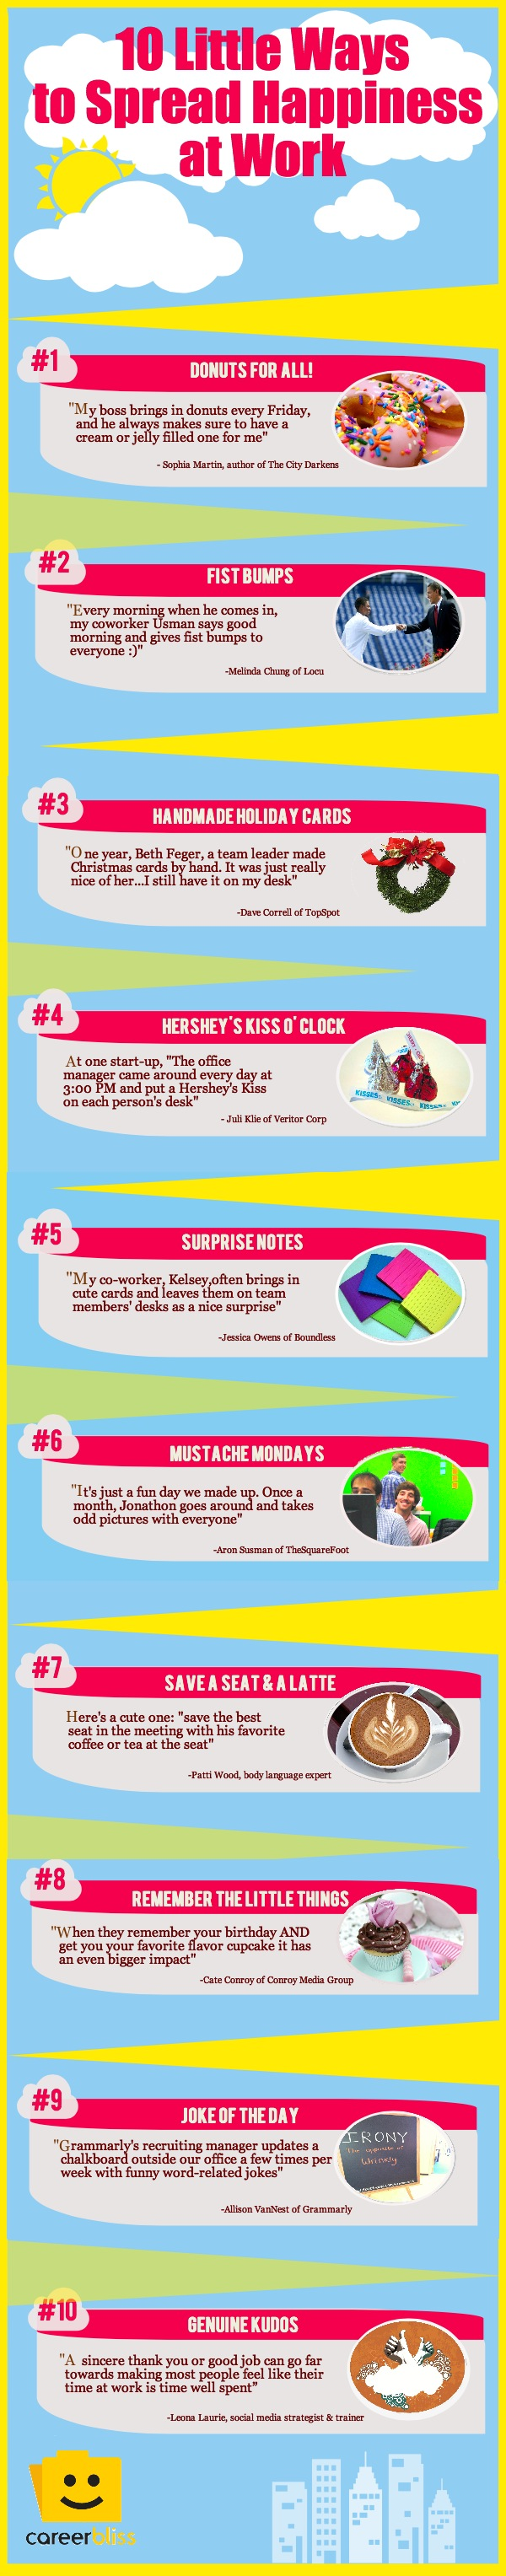 10 Little Ways to Spread Happiness at Work